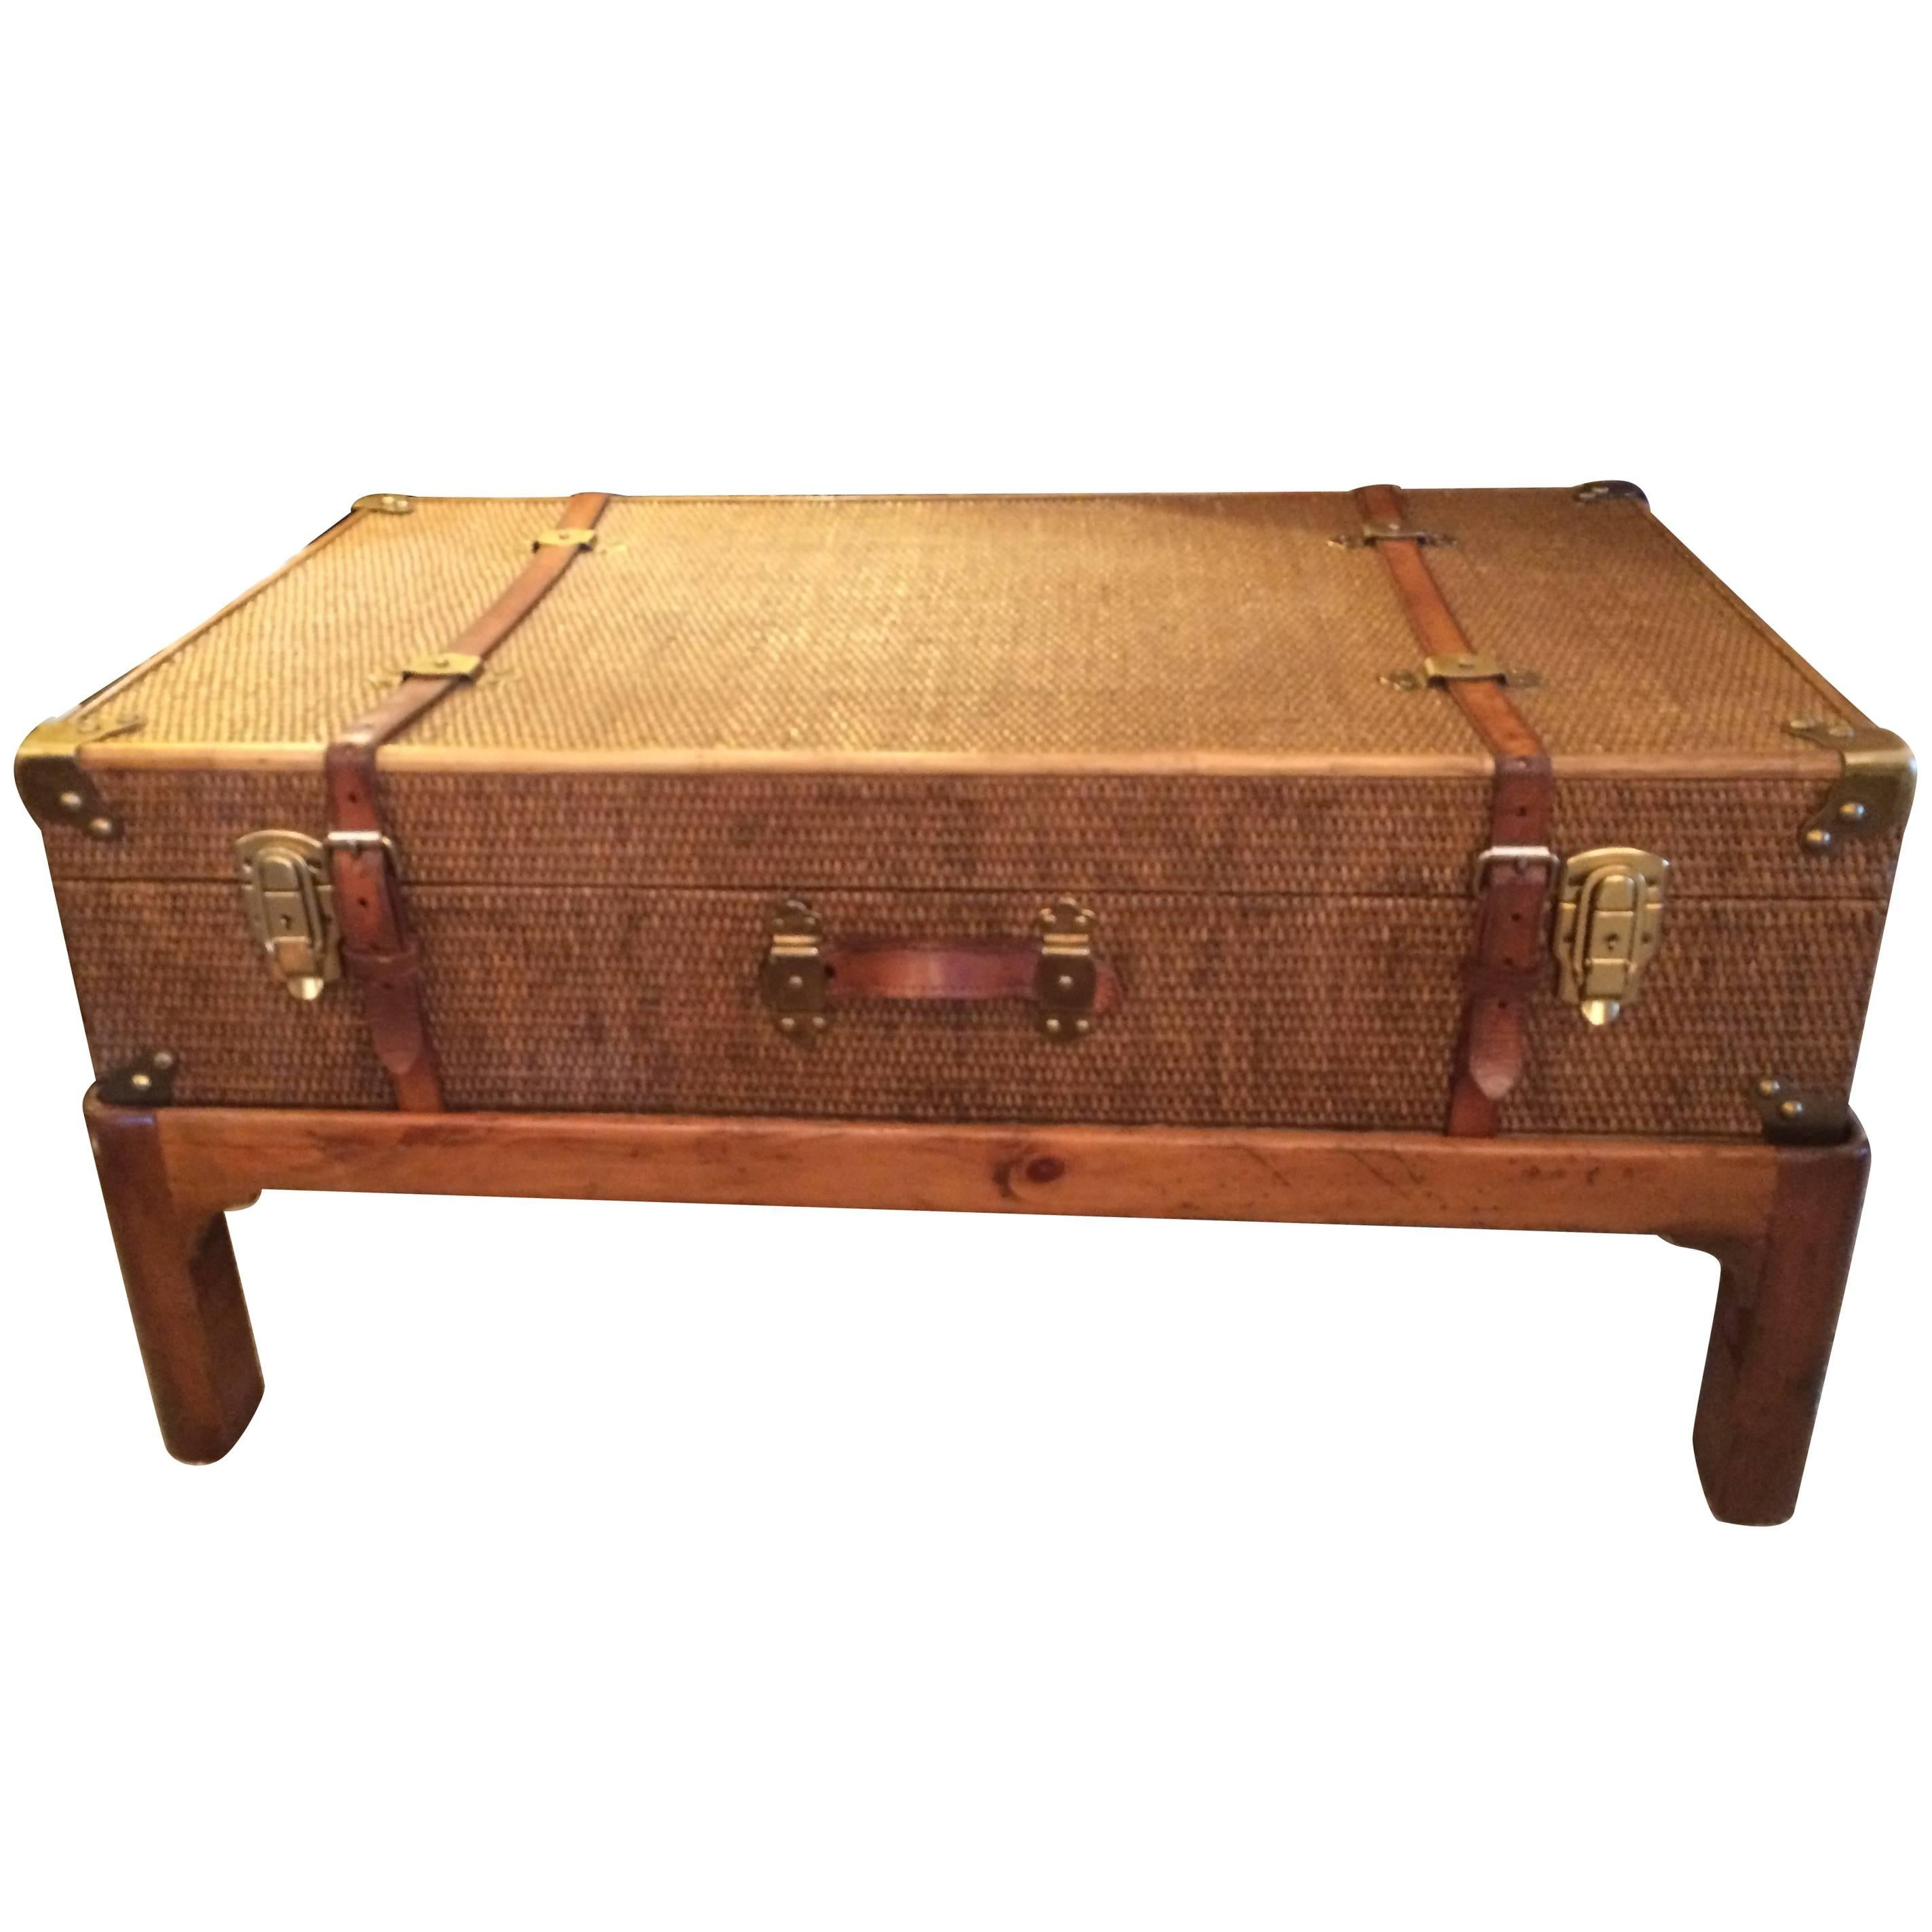 Exceptionnel One Of A Kind Vintage Rattan Suitcase Coffee Table On Custom Wooden Base  For Sale